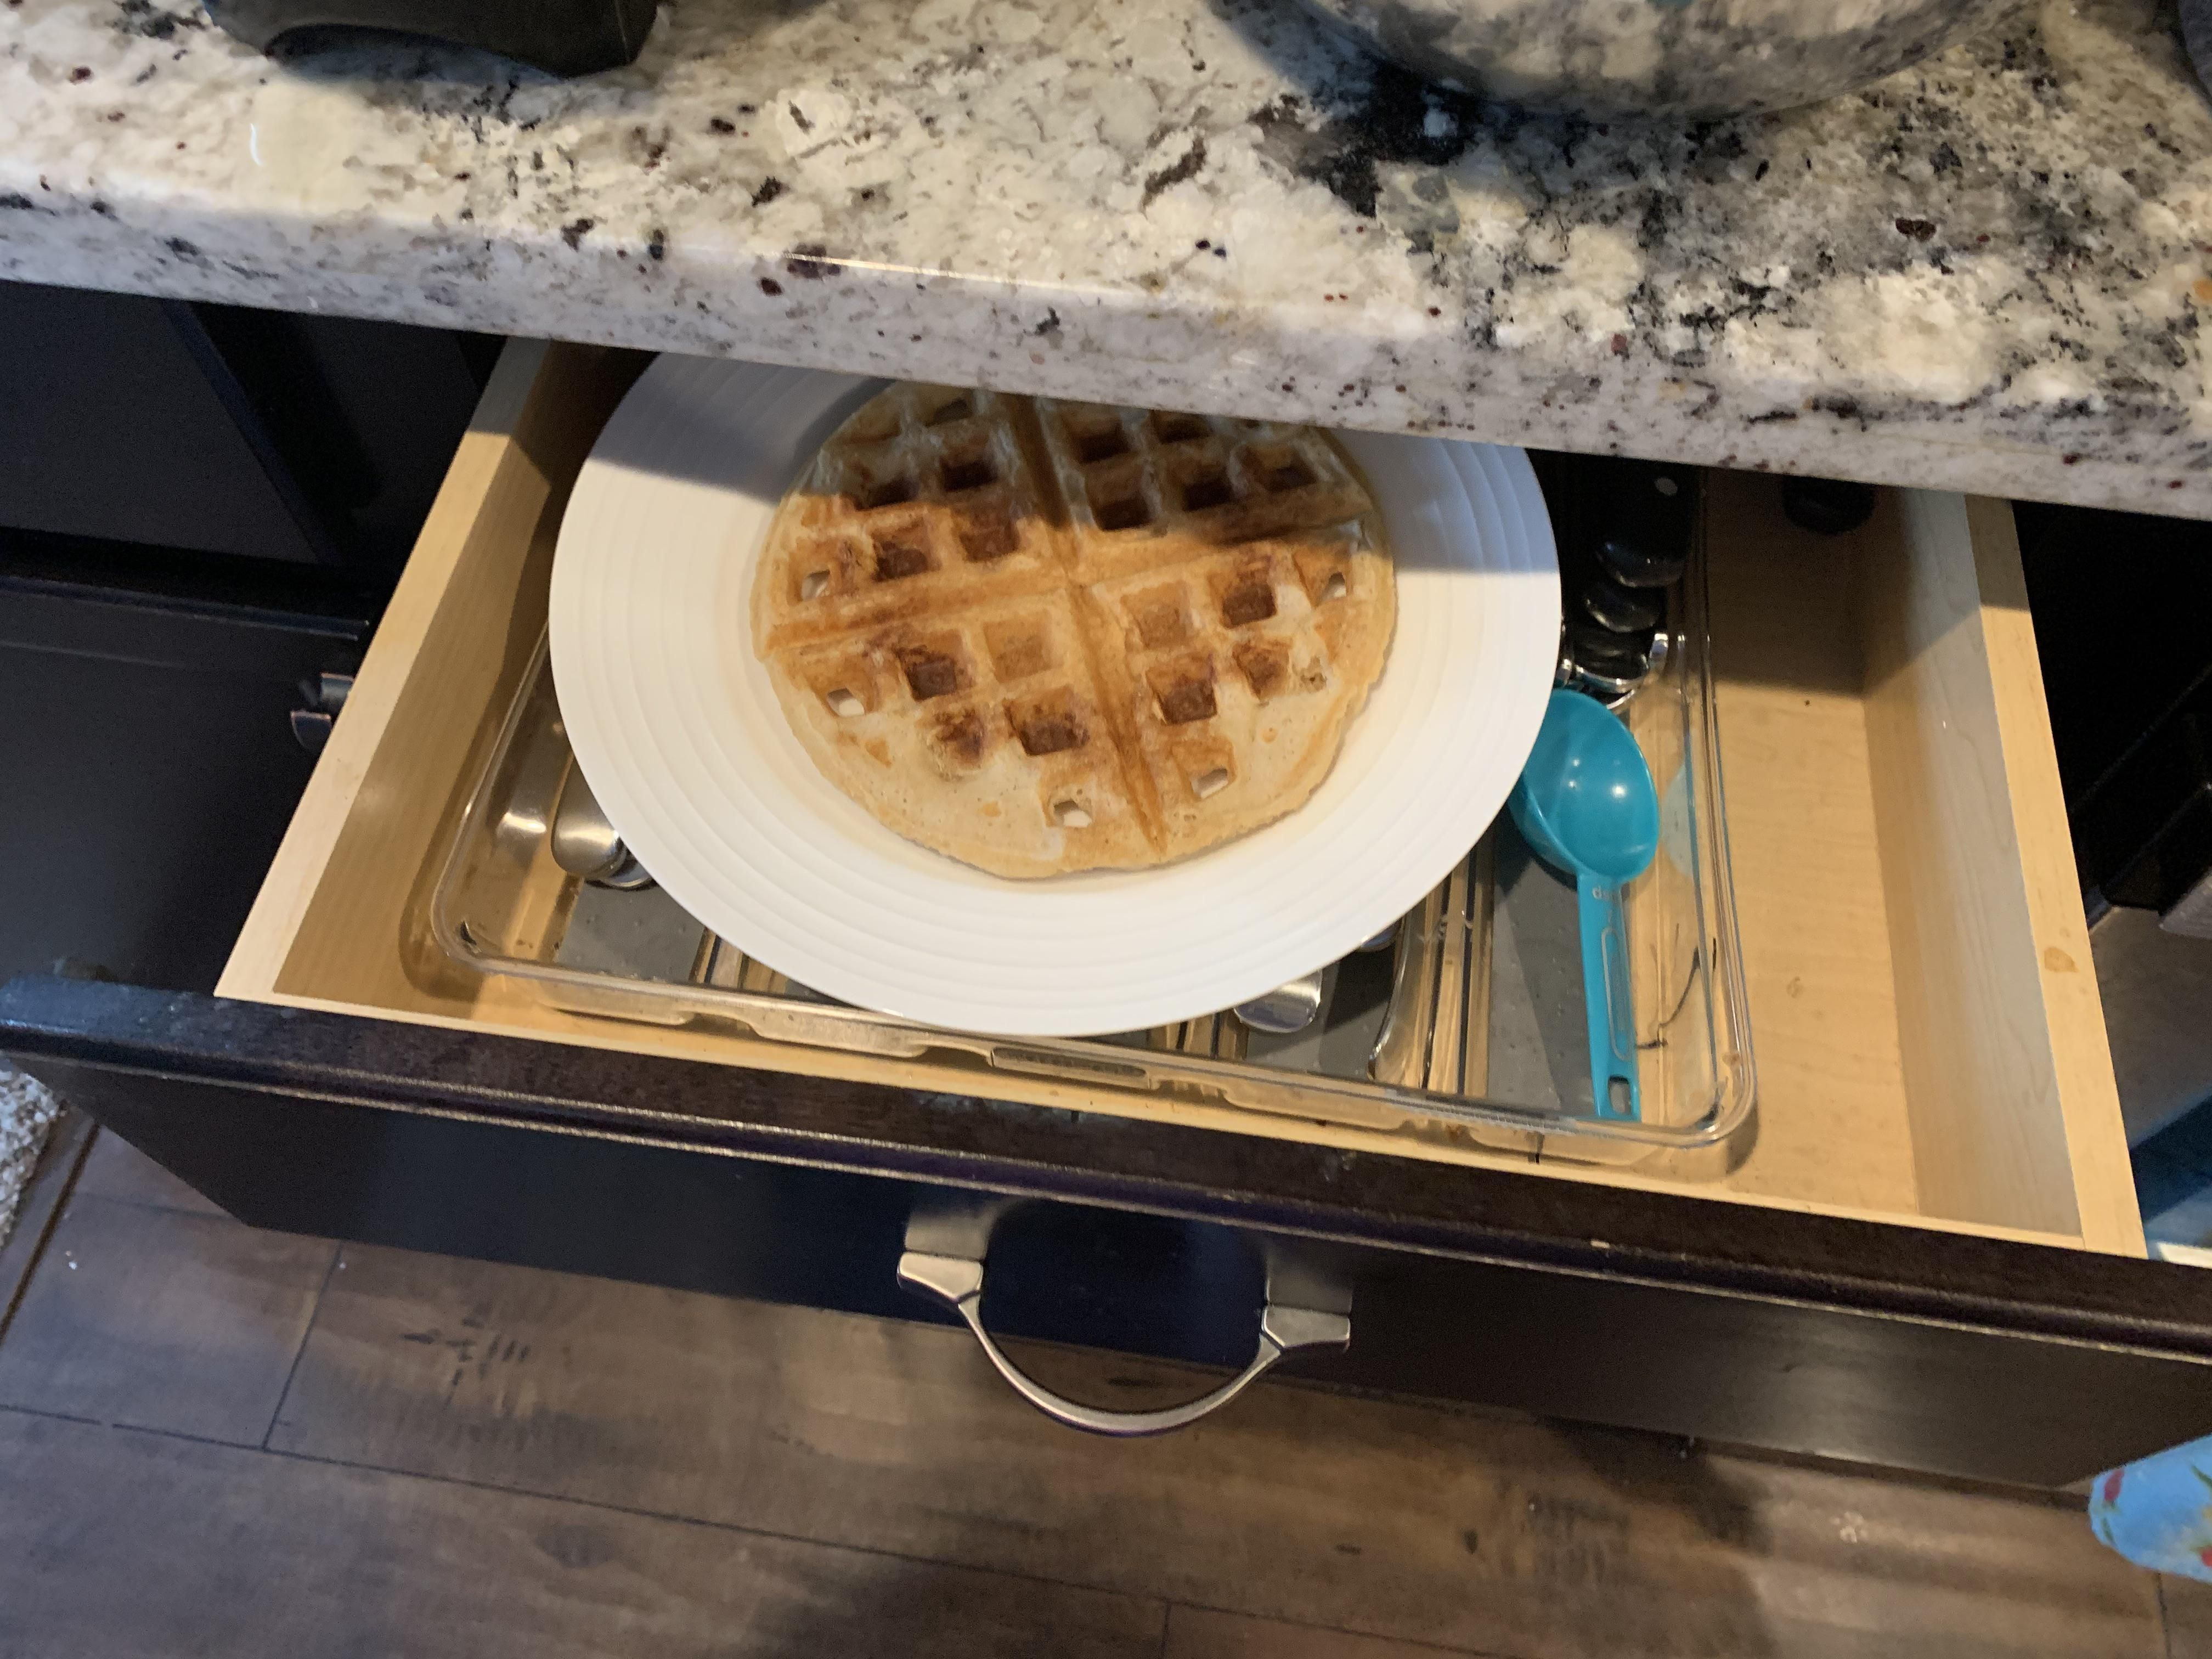 My mom swore she already made me a waffle, but we couldn't find it. So she made another one and I grabbed a fork....